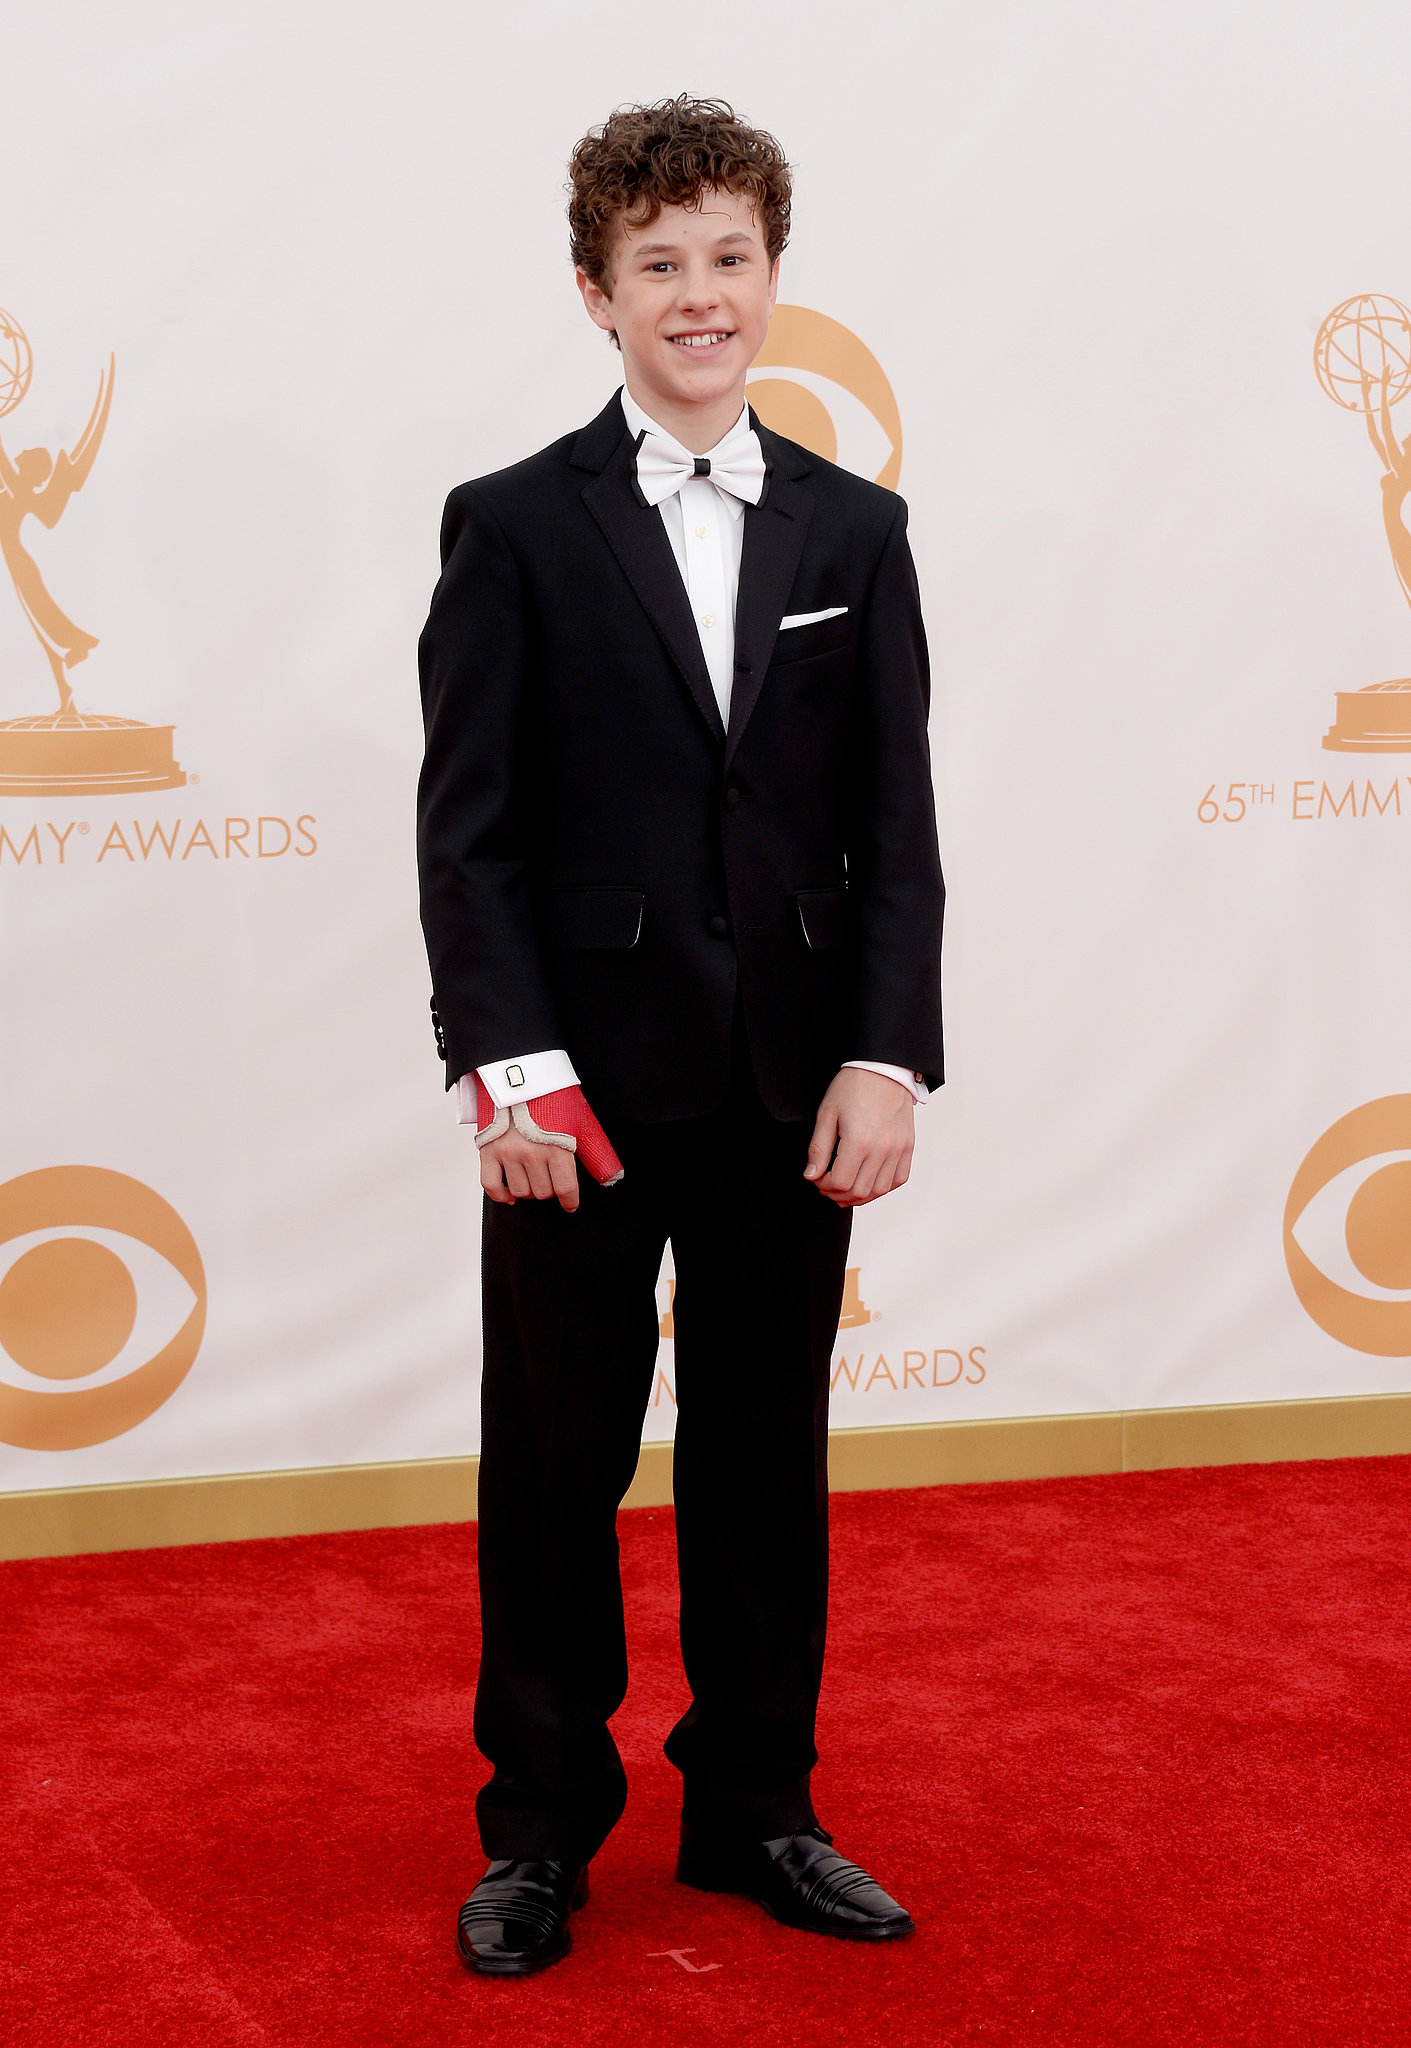 Modern Family actor Nolan Gould walked the red carpet.